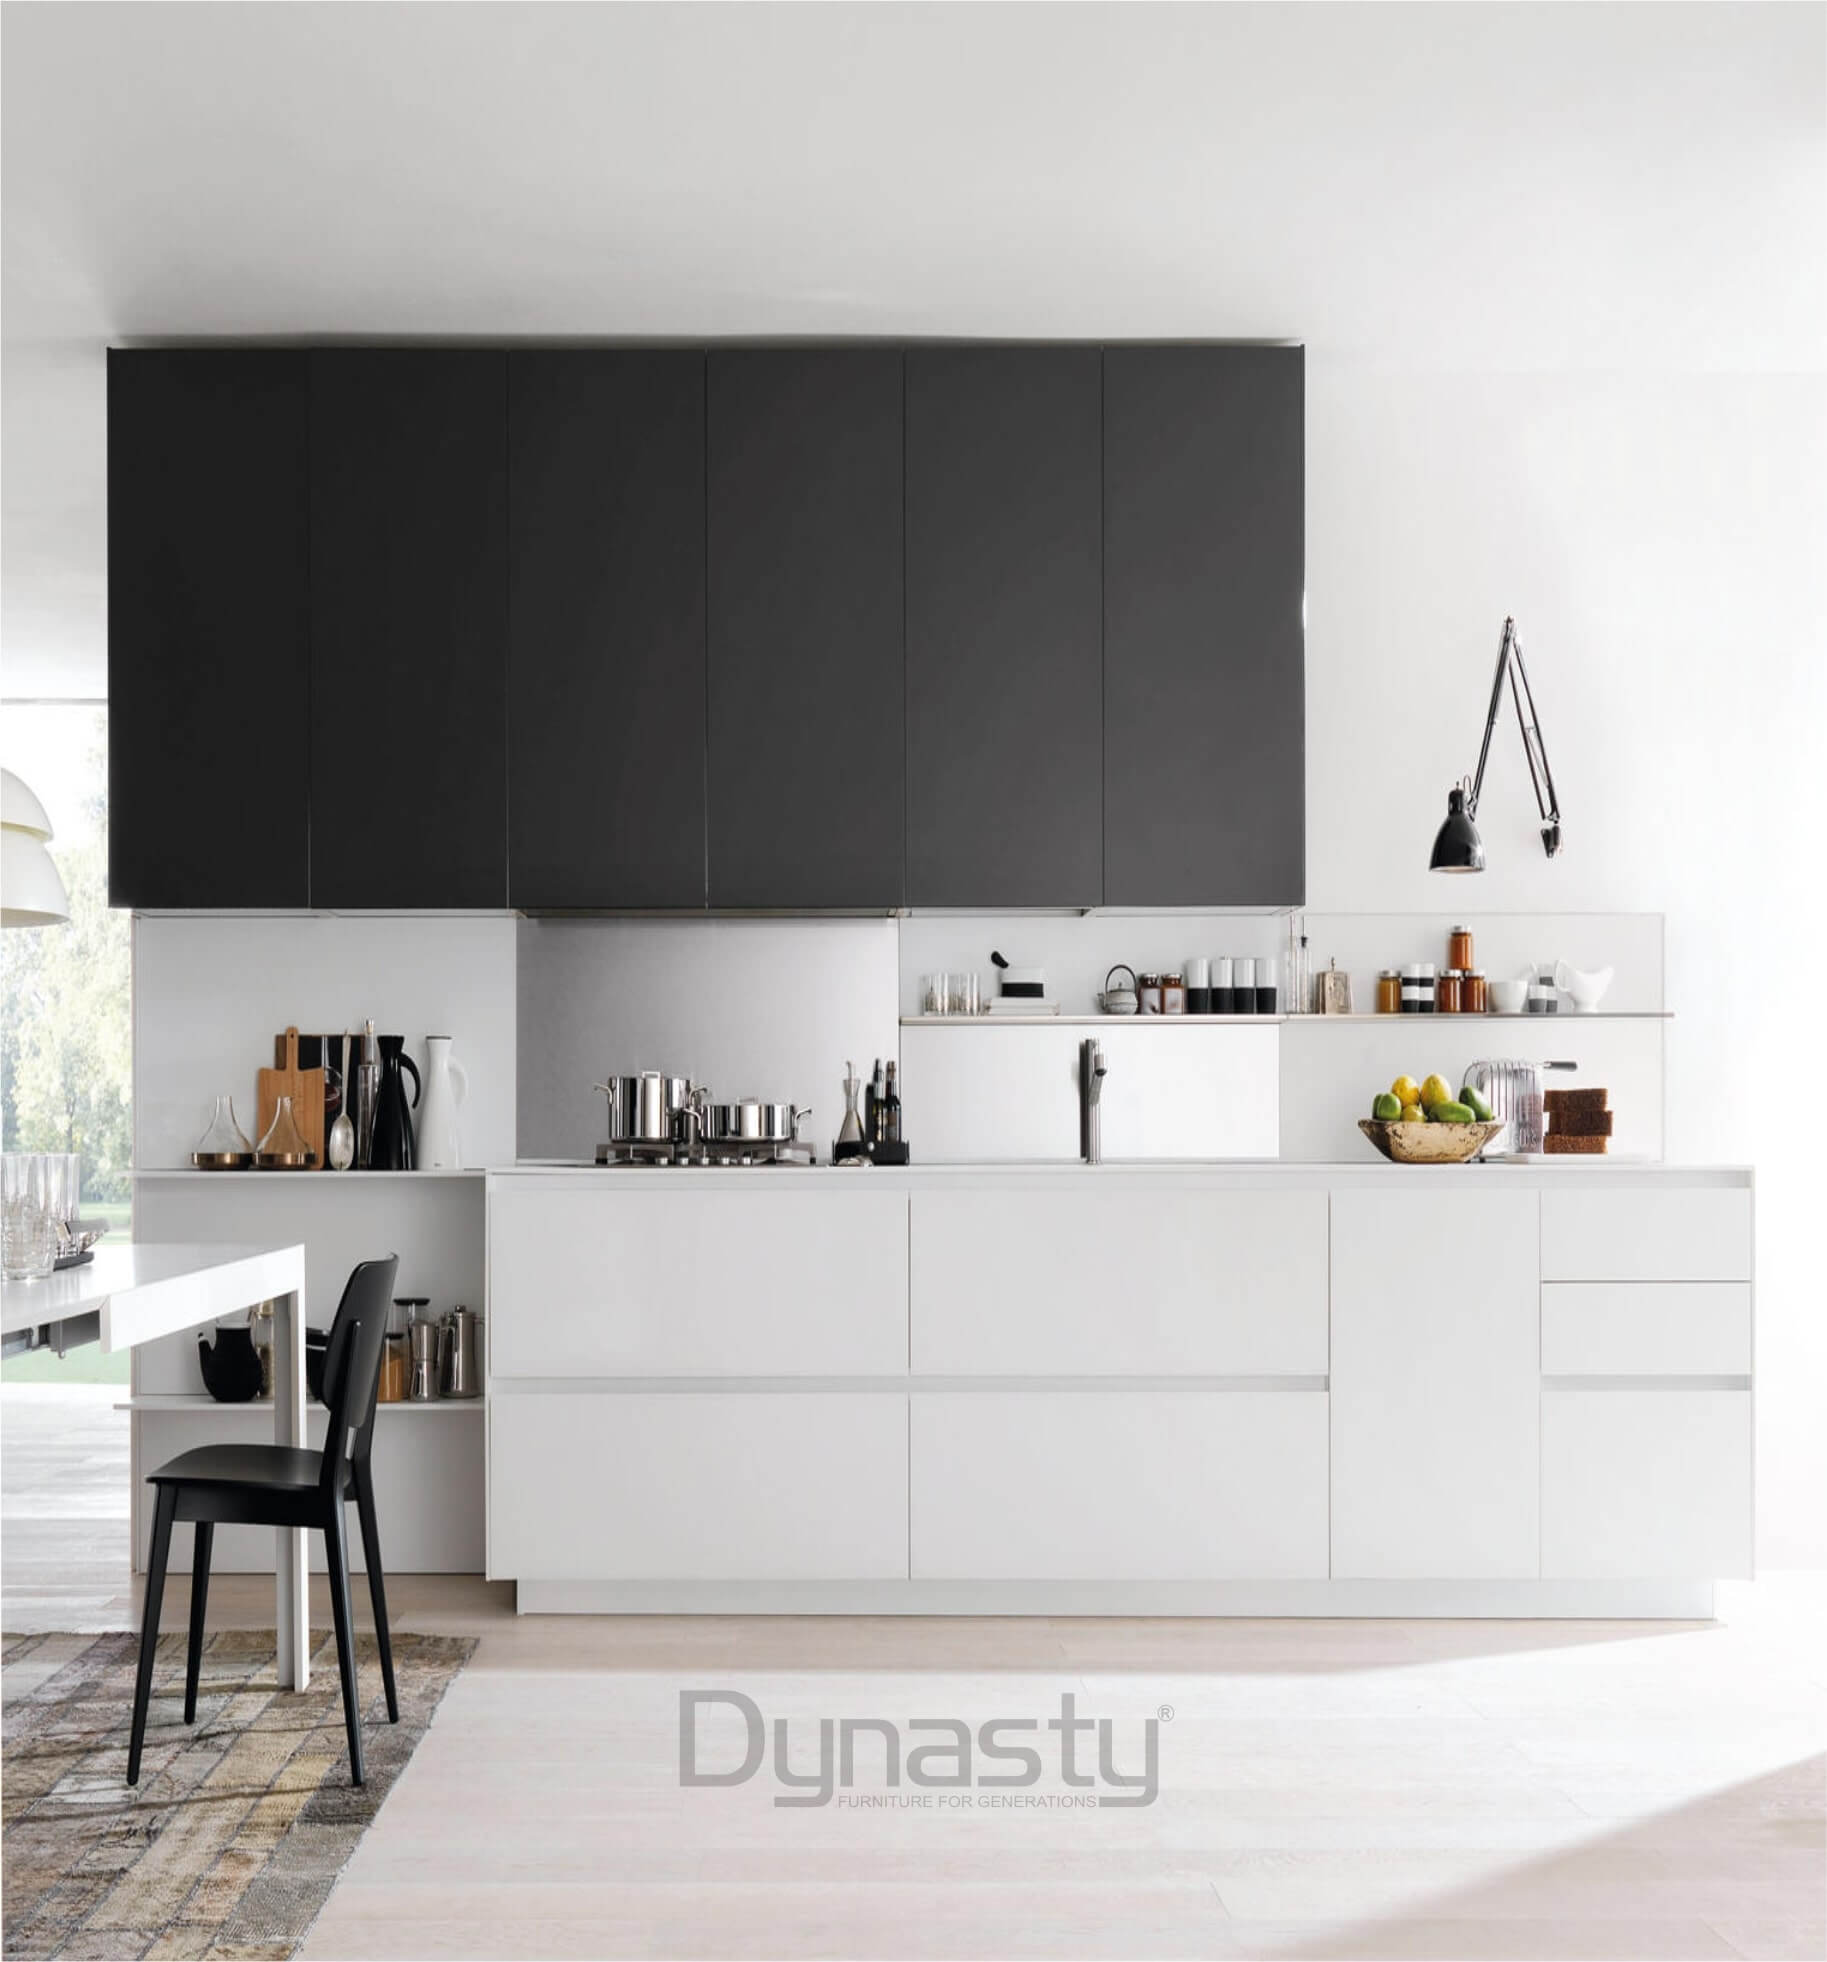 dynasty-aquatuff-kitchen-and-wardrobe